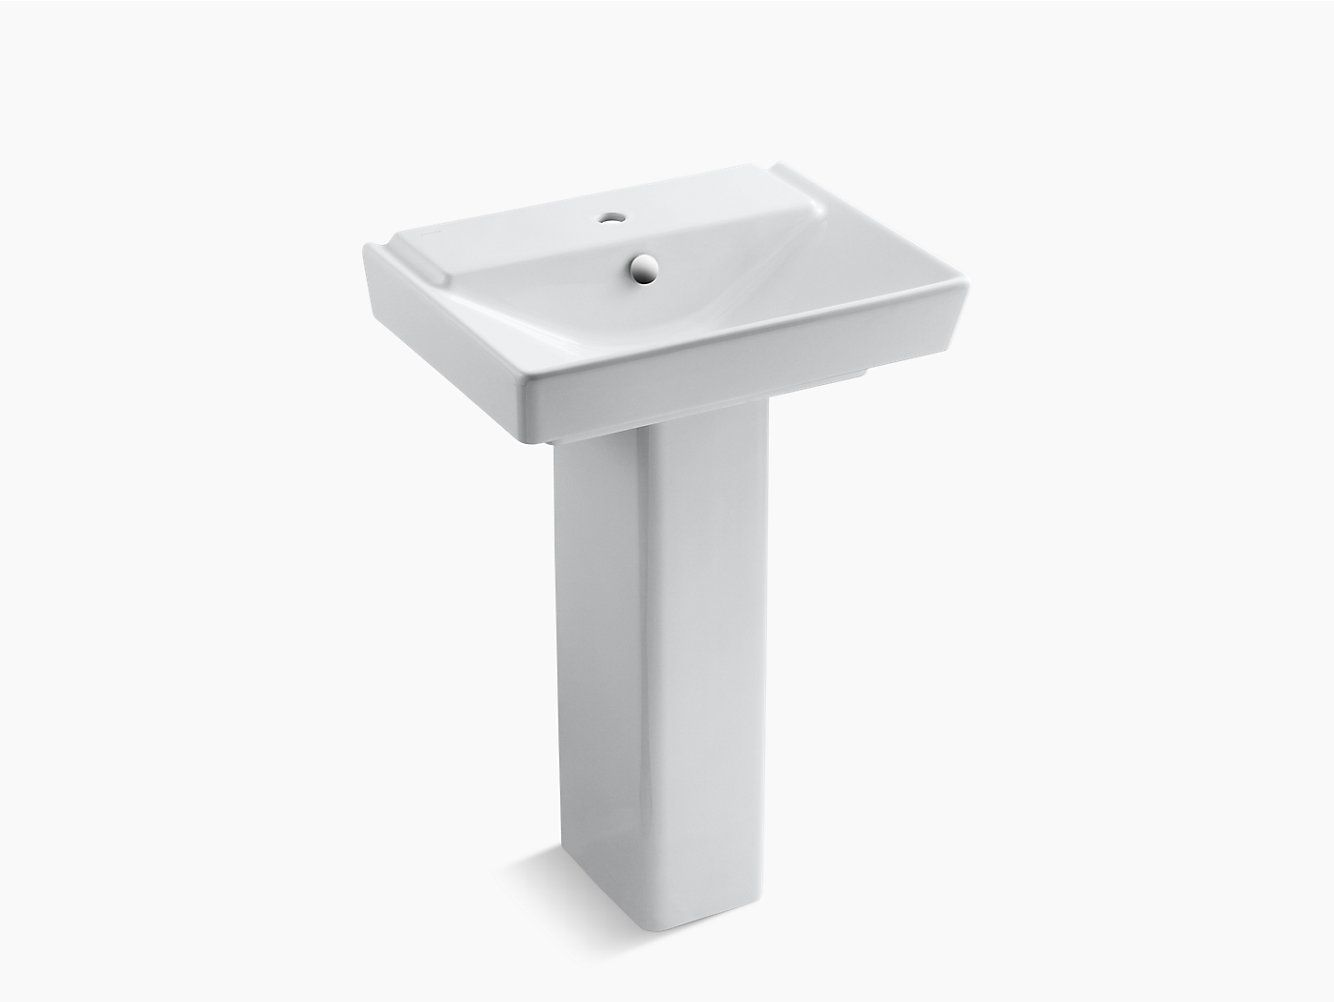 K 5152 1 Reve 23 Inch Sink Basin And Pedestal With Single Hole